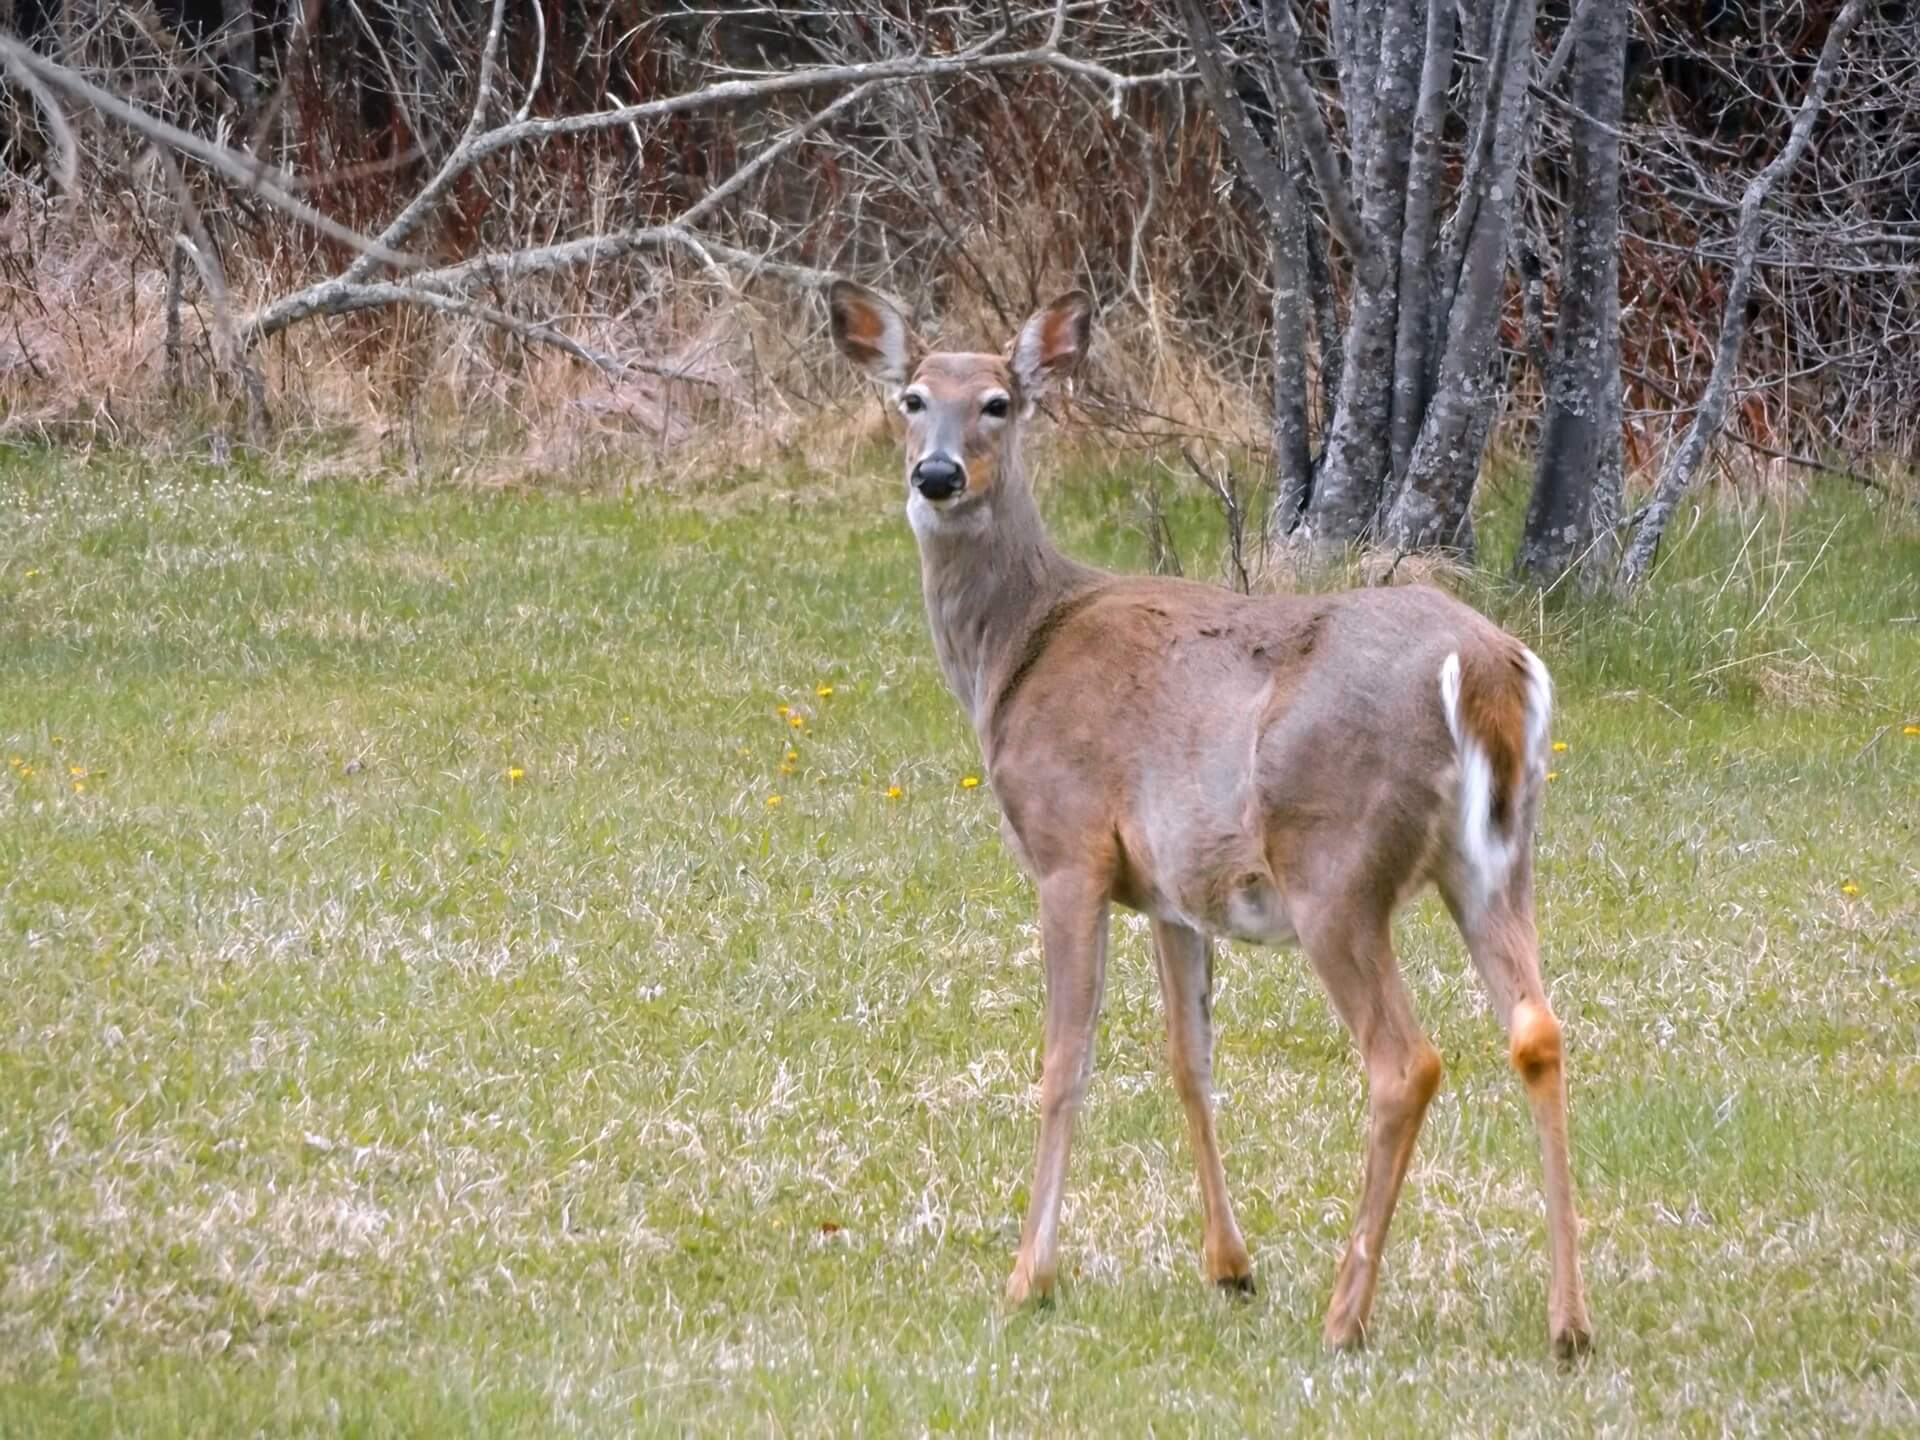 Hunters are being asked to help control CWD by shootign additional white-tailed deer..